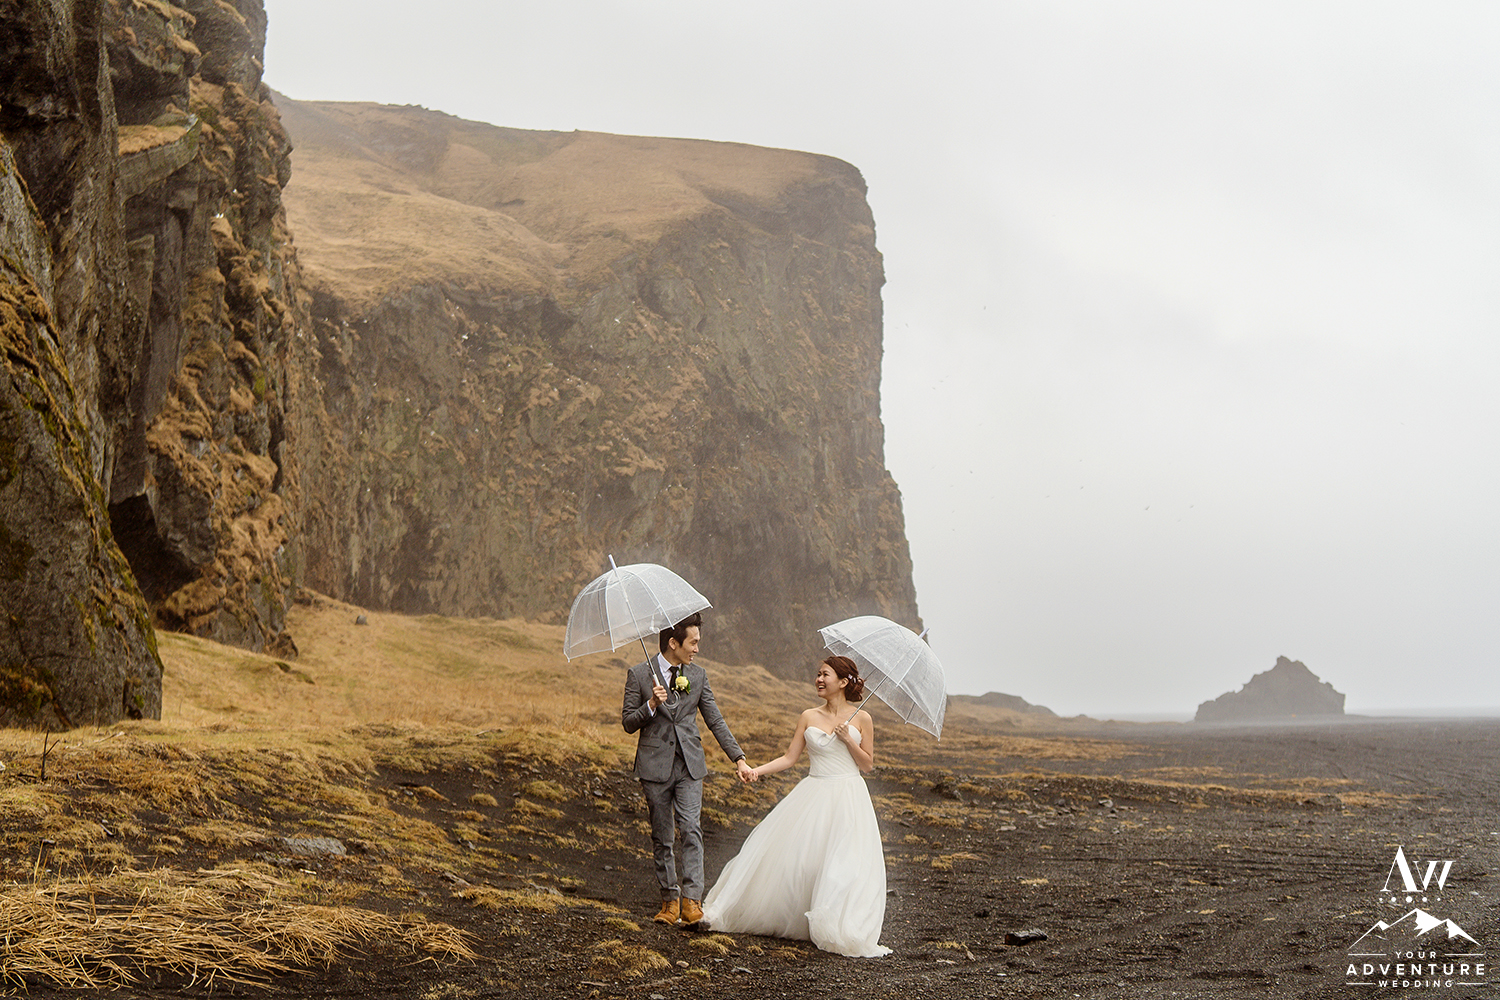 Iceland Elopement Photographer-Your Adventure Wedding